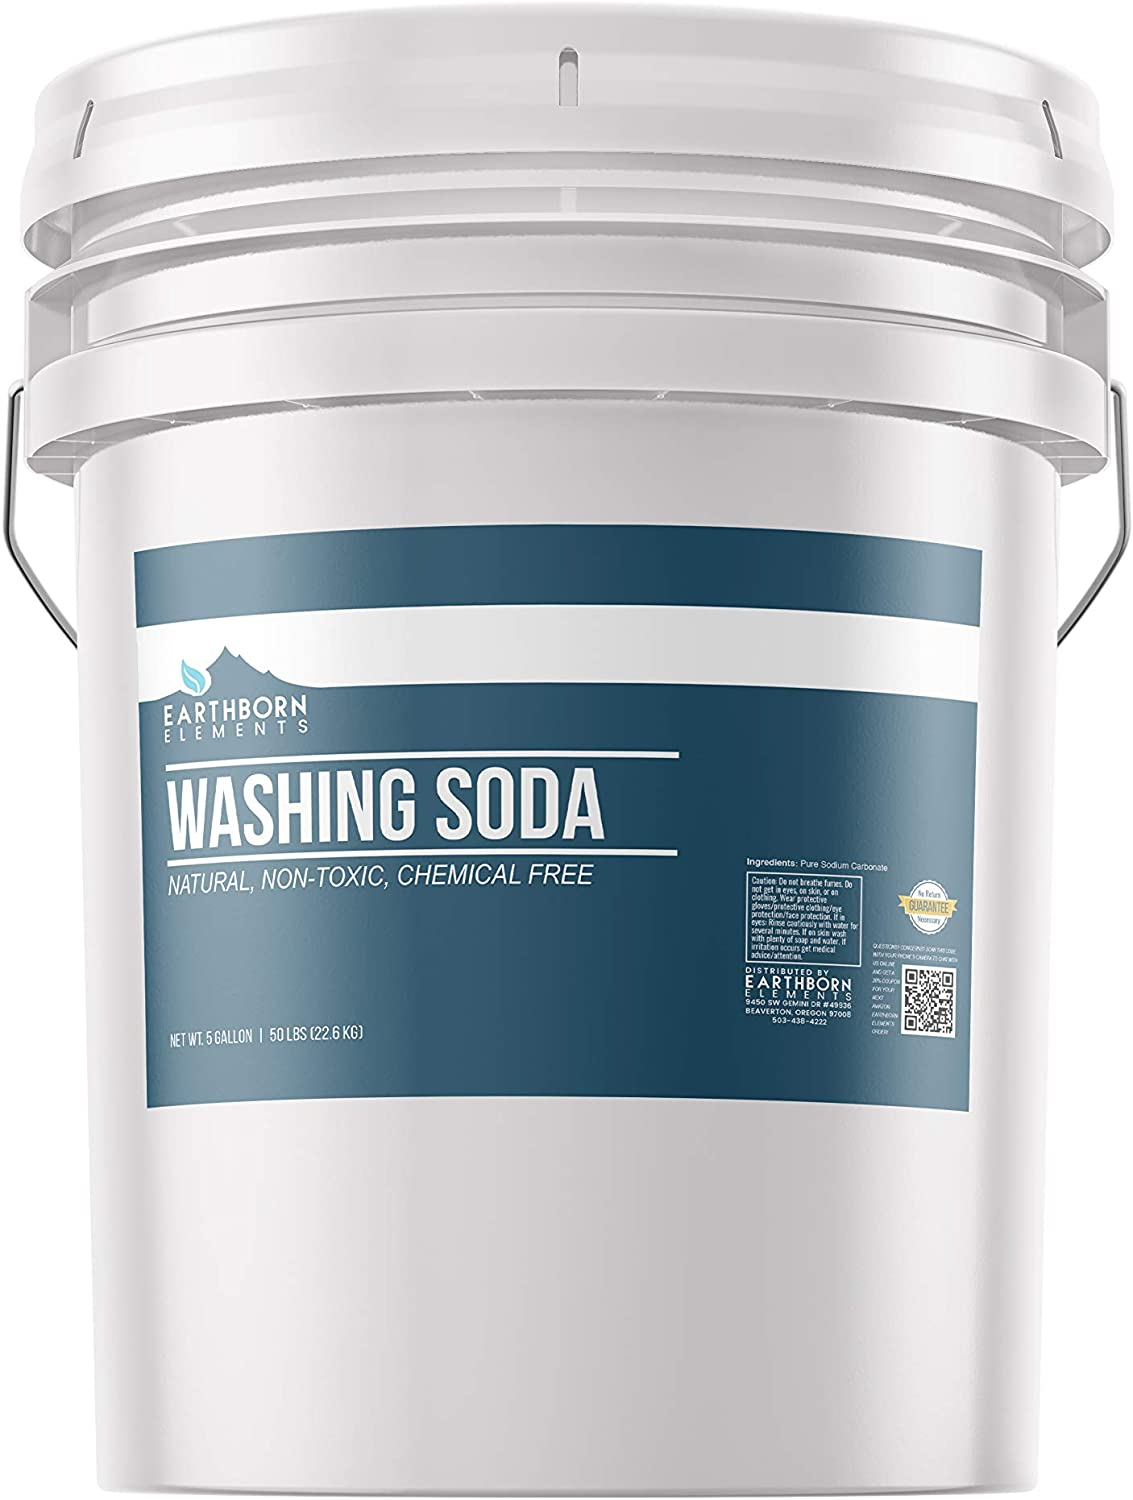 All-Natural Washing Soda (5 Gallon (50 lbs)) by Earthborn Elements, Soda Ash, Sodium Carbonate, Laundry Booster, Non-Toxic, Hypoallergenic